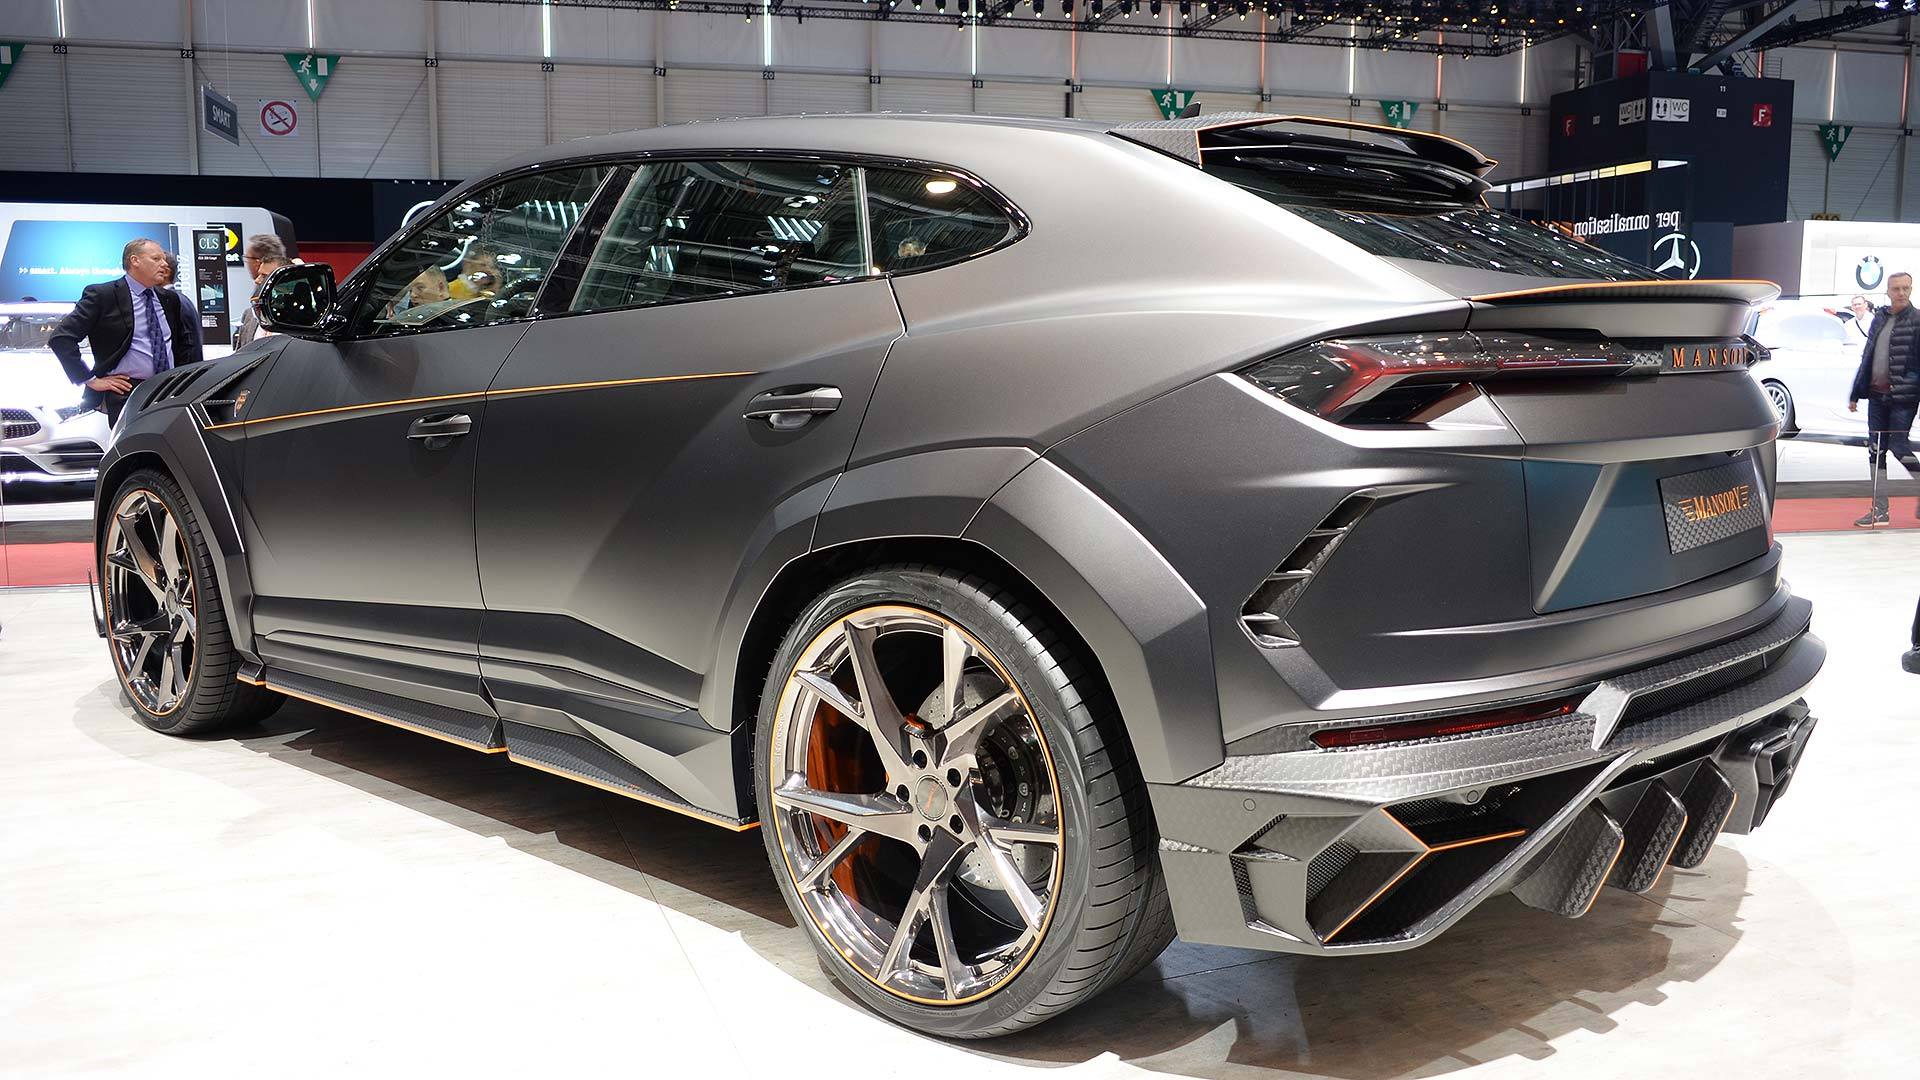 15_modified_geneva_2019.jpg